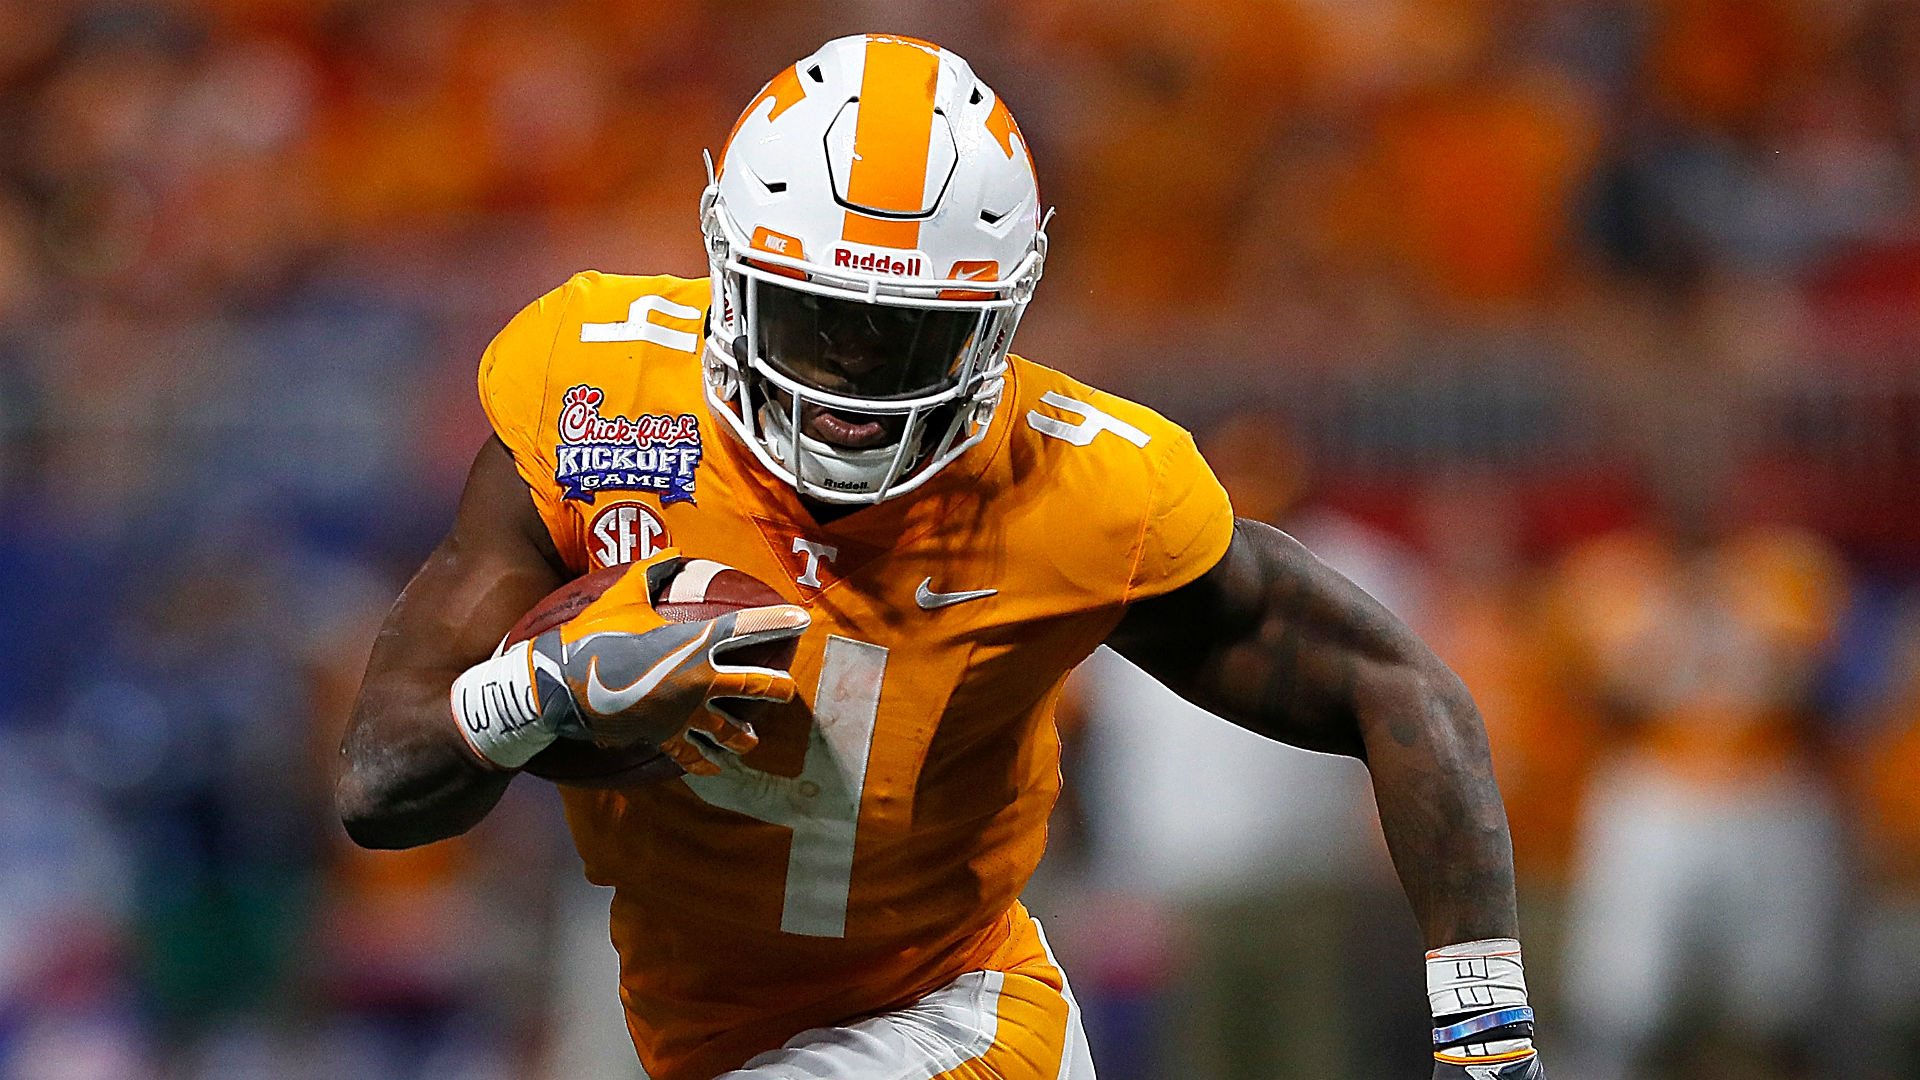 Tennessee players John Kelly, Will Ignont suspended for Kentucky game